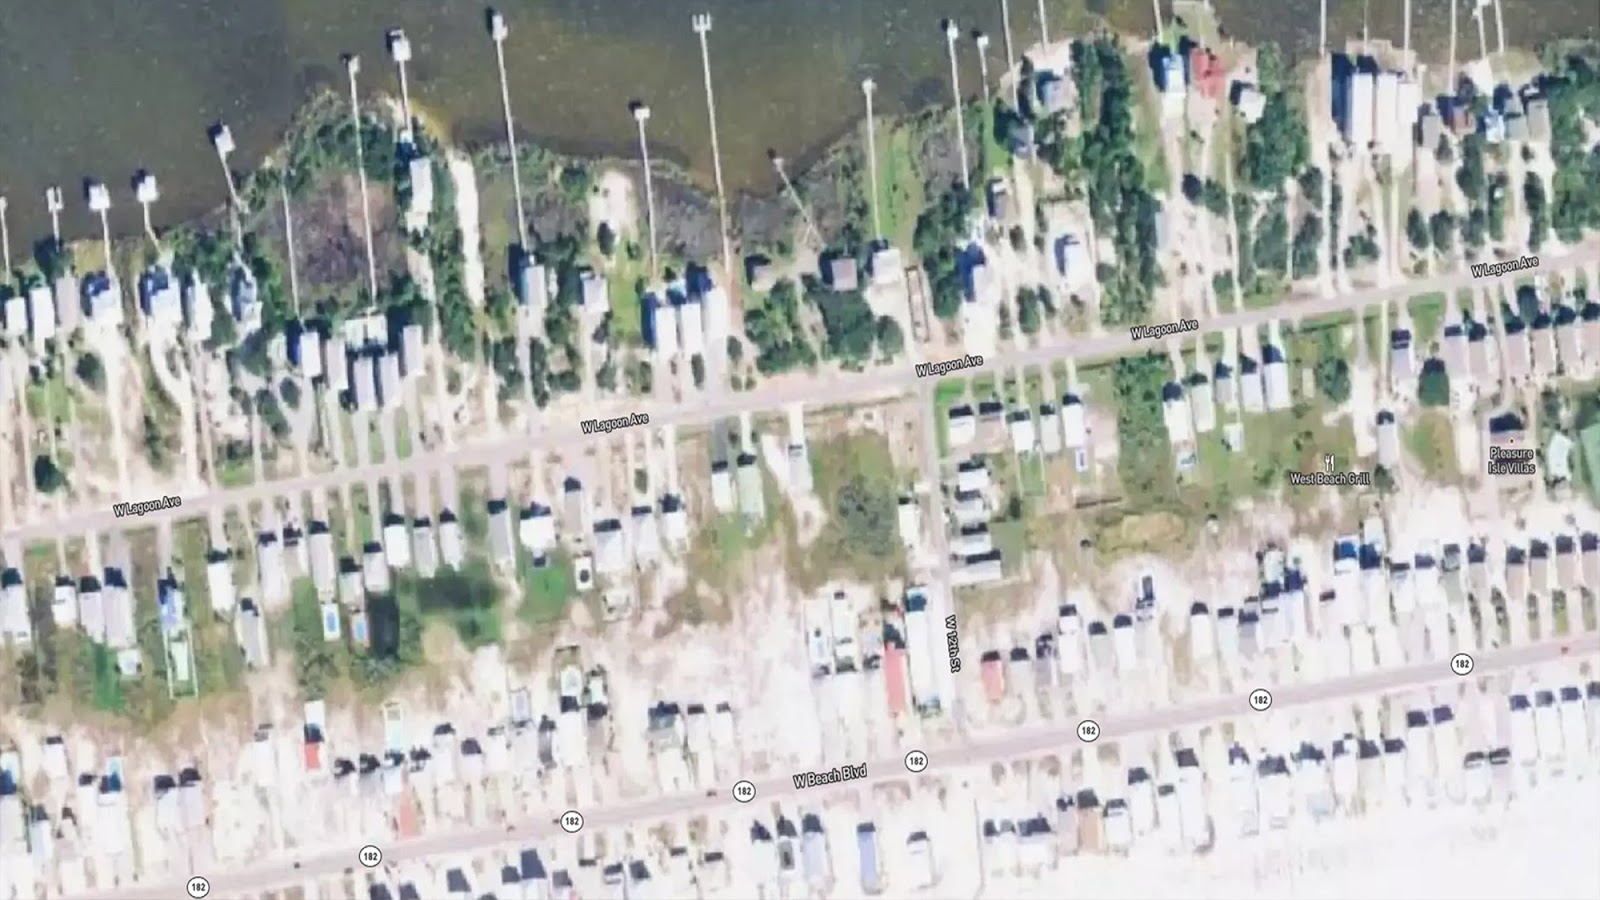 an image showing damage near Area west of Shelby Lake, Gulf Shores, Alabama  after Sally